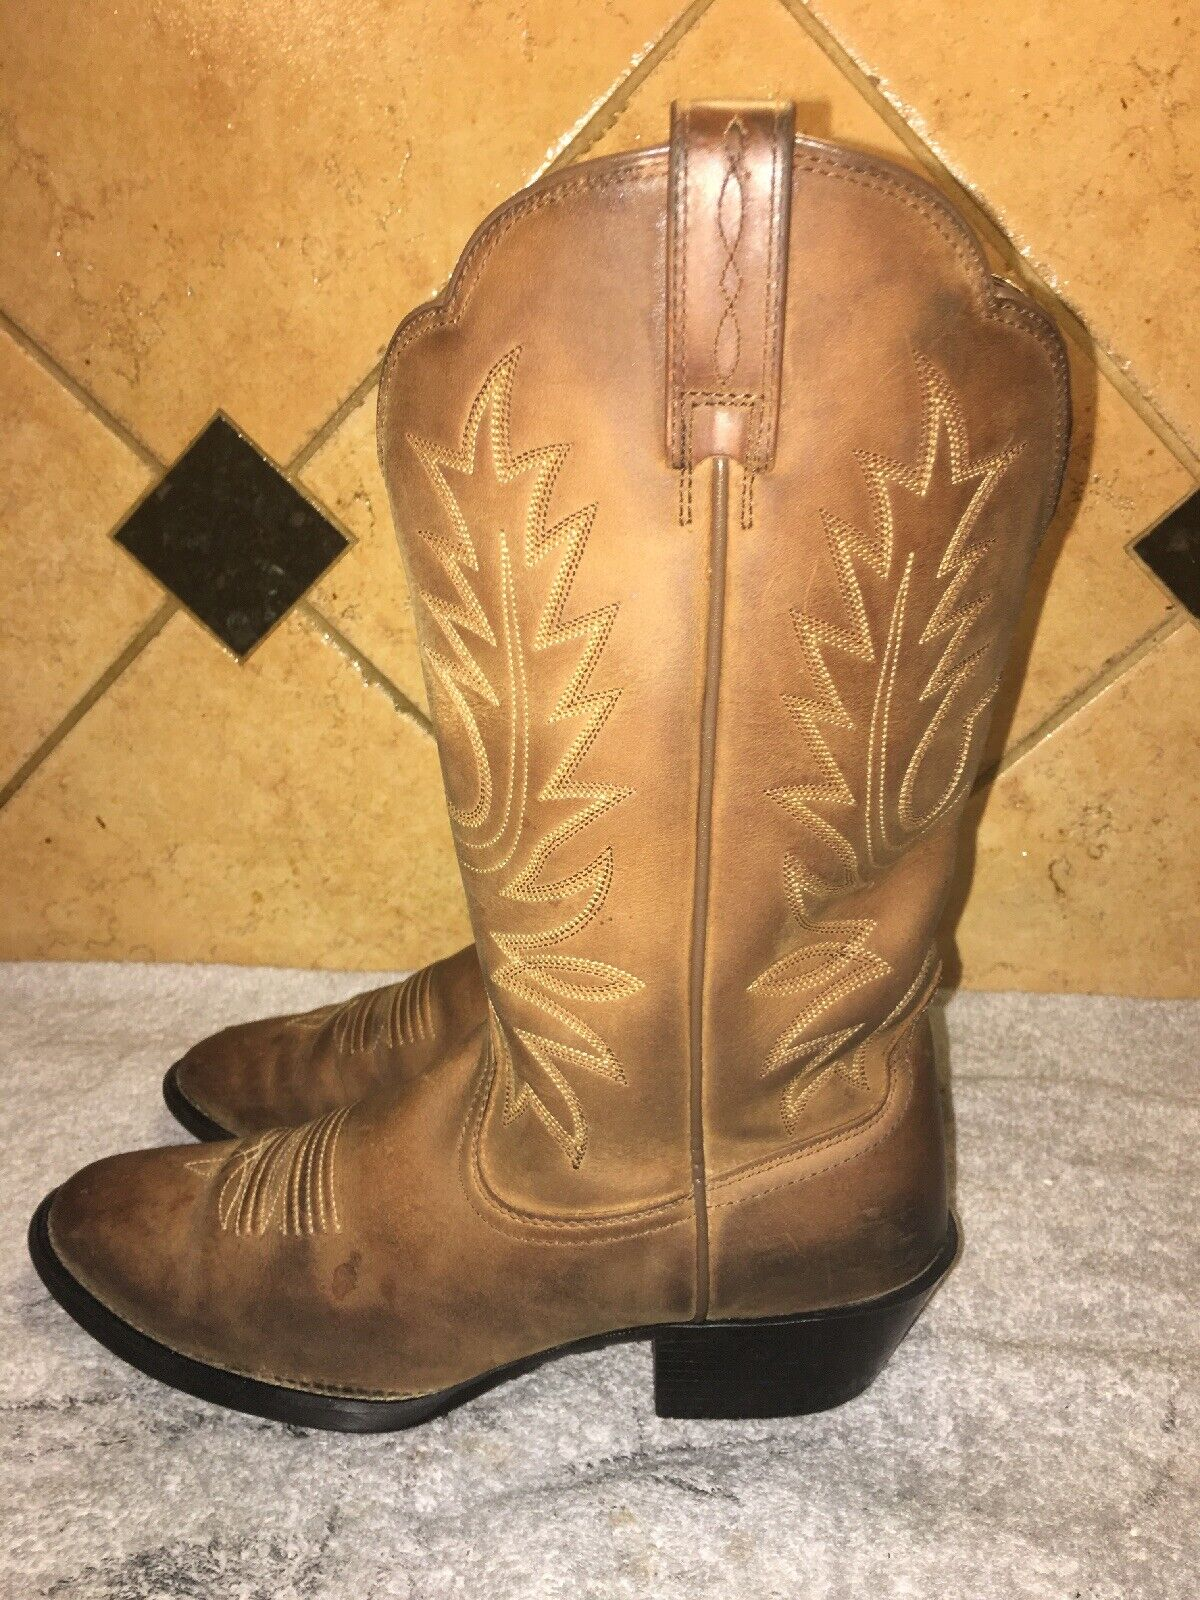 Ariat 15725 Brown Leather Cowboy Western Boots Sz 7.5 B